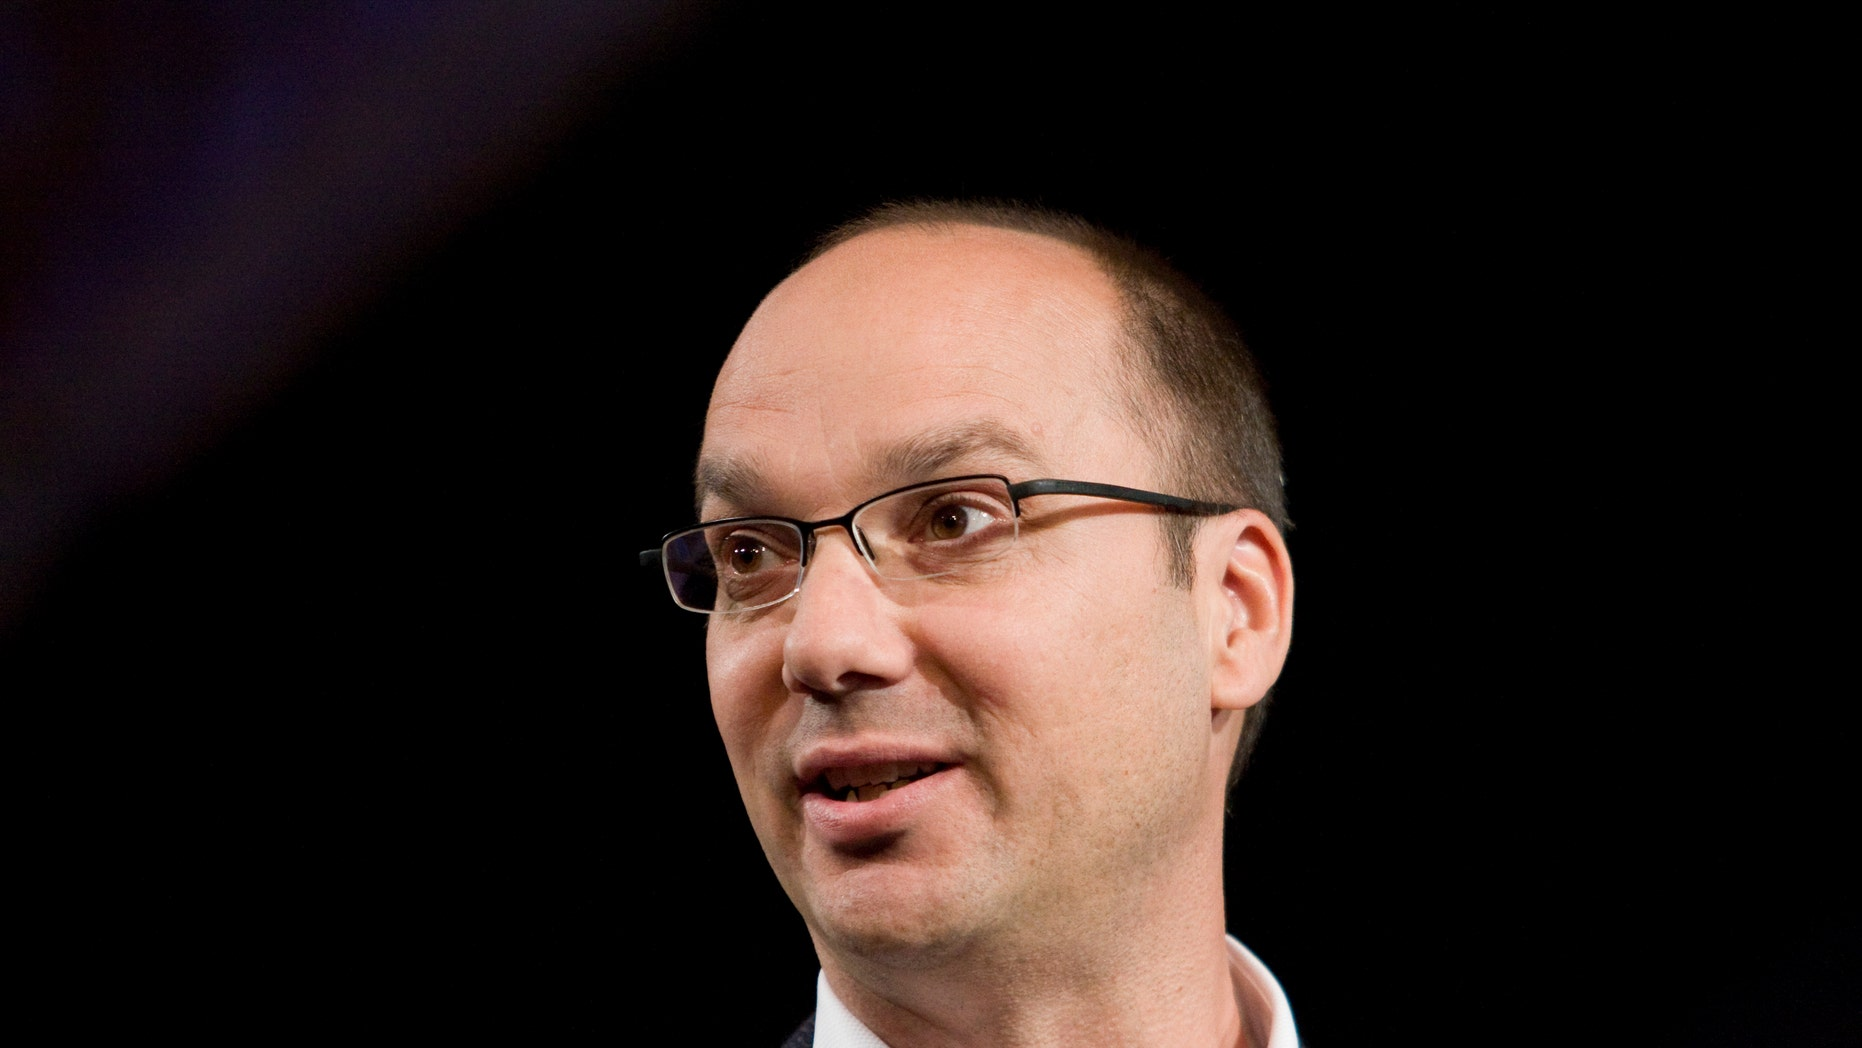 Andy Rubin reportedly got 90M exit package from Google amid sexual-misconduct investigation Andy Rubin reportedly got 90M exit package from Google amid sexual-misconduct investigation new foto